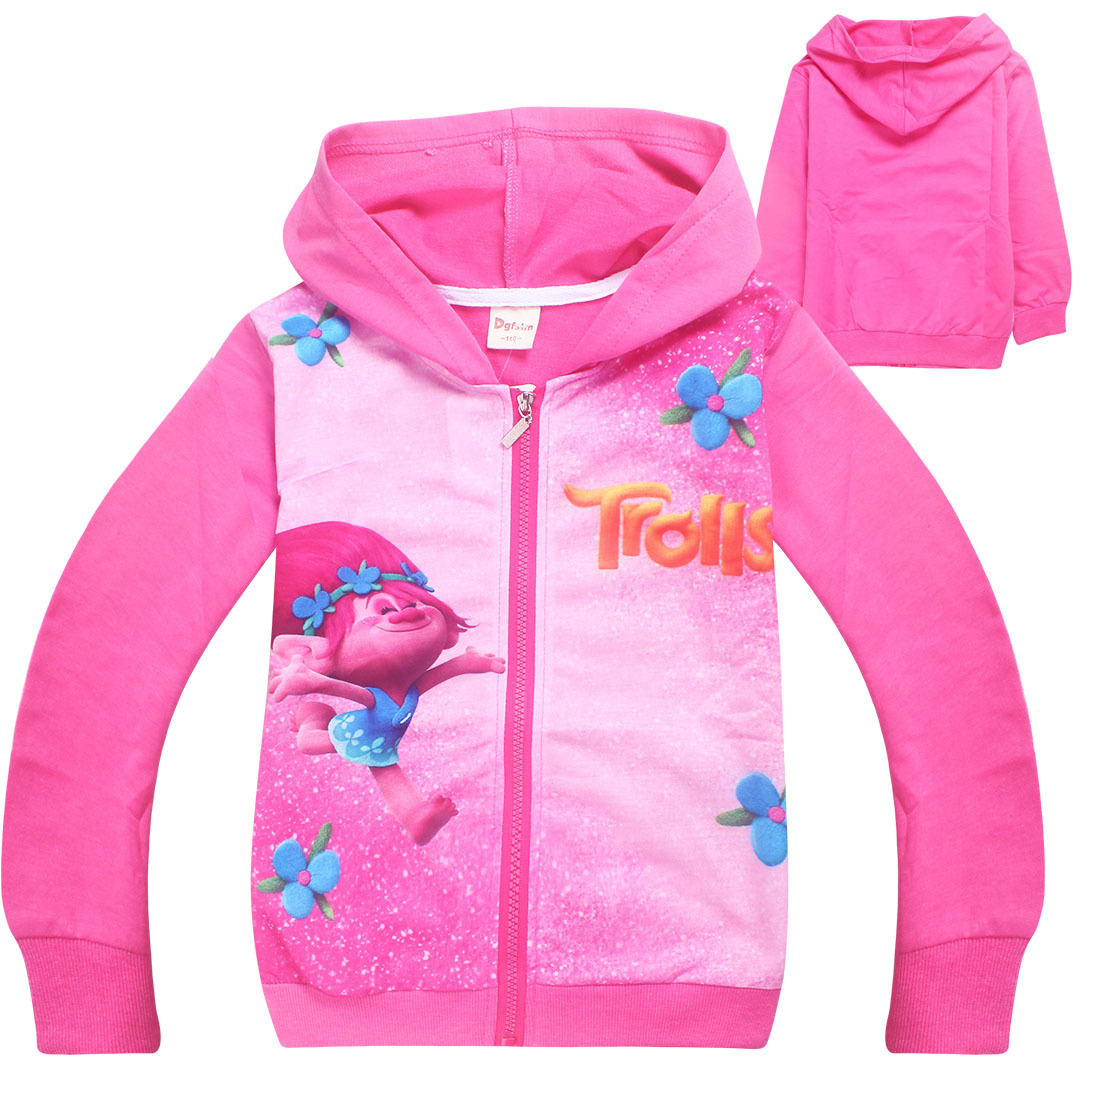 2018 Spring Autumn Girls Hoodies Trolls Zipper Jacket Kids Outerwear Girls Sweatshirt Children Clothes Baby Girl Clothes цены